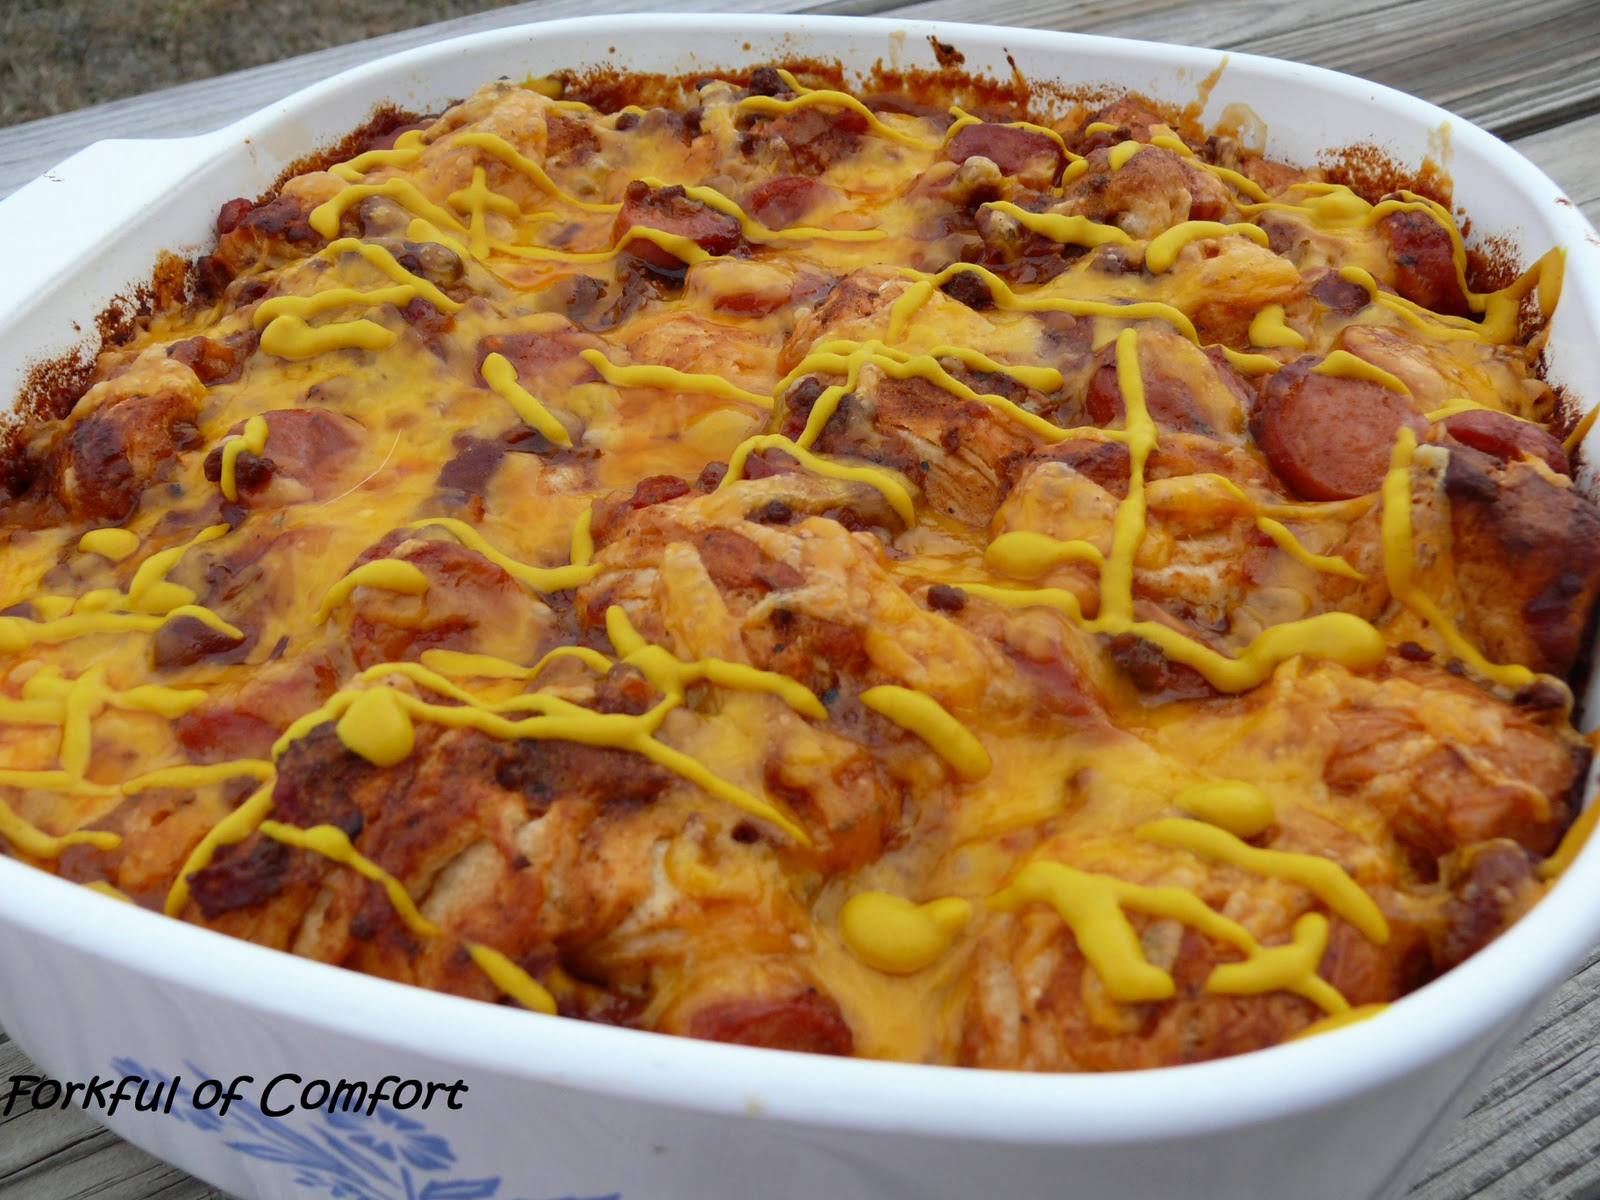 Forkful of Comfort: Bubble Chili Dog